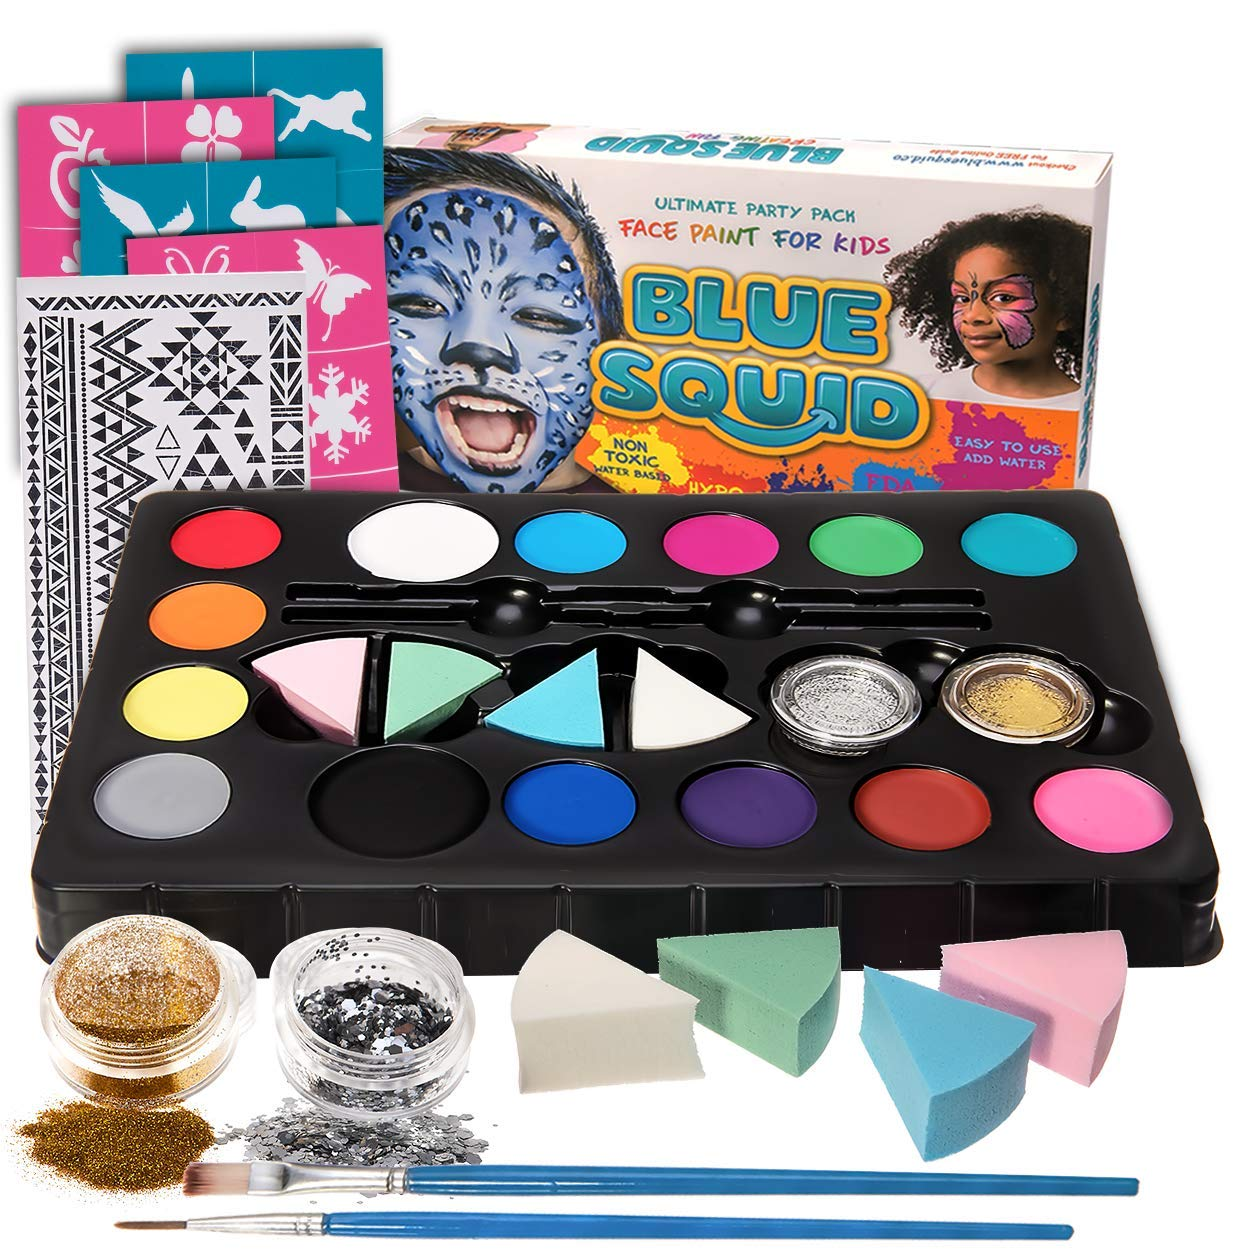 Blue Squid Face Paint Kit for Kids, 52 Pieces, 14 Colors, 2 Glitters, 24 Stencils, Tattoo Sheet, 4 Sponges, Face Painting Party Supplies - Safe for Sensitive Skin - Professional Costume Makeup